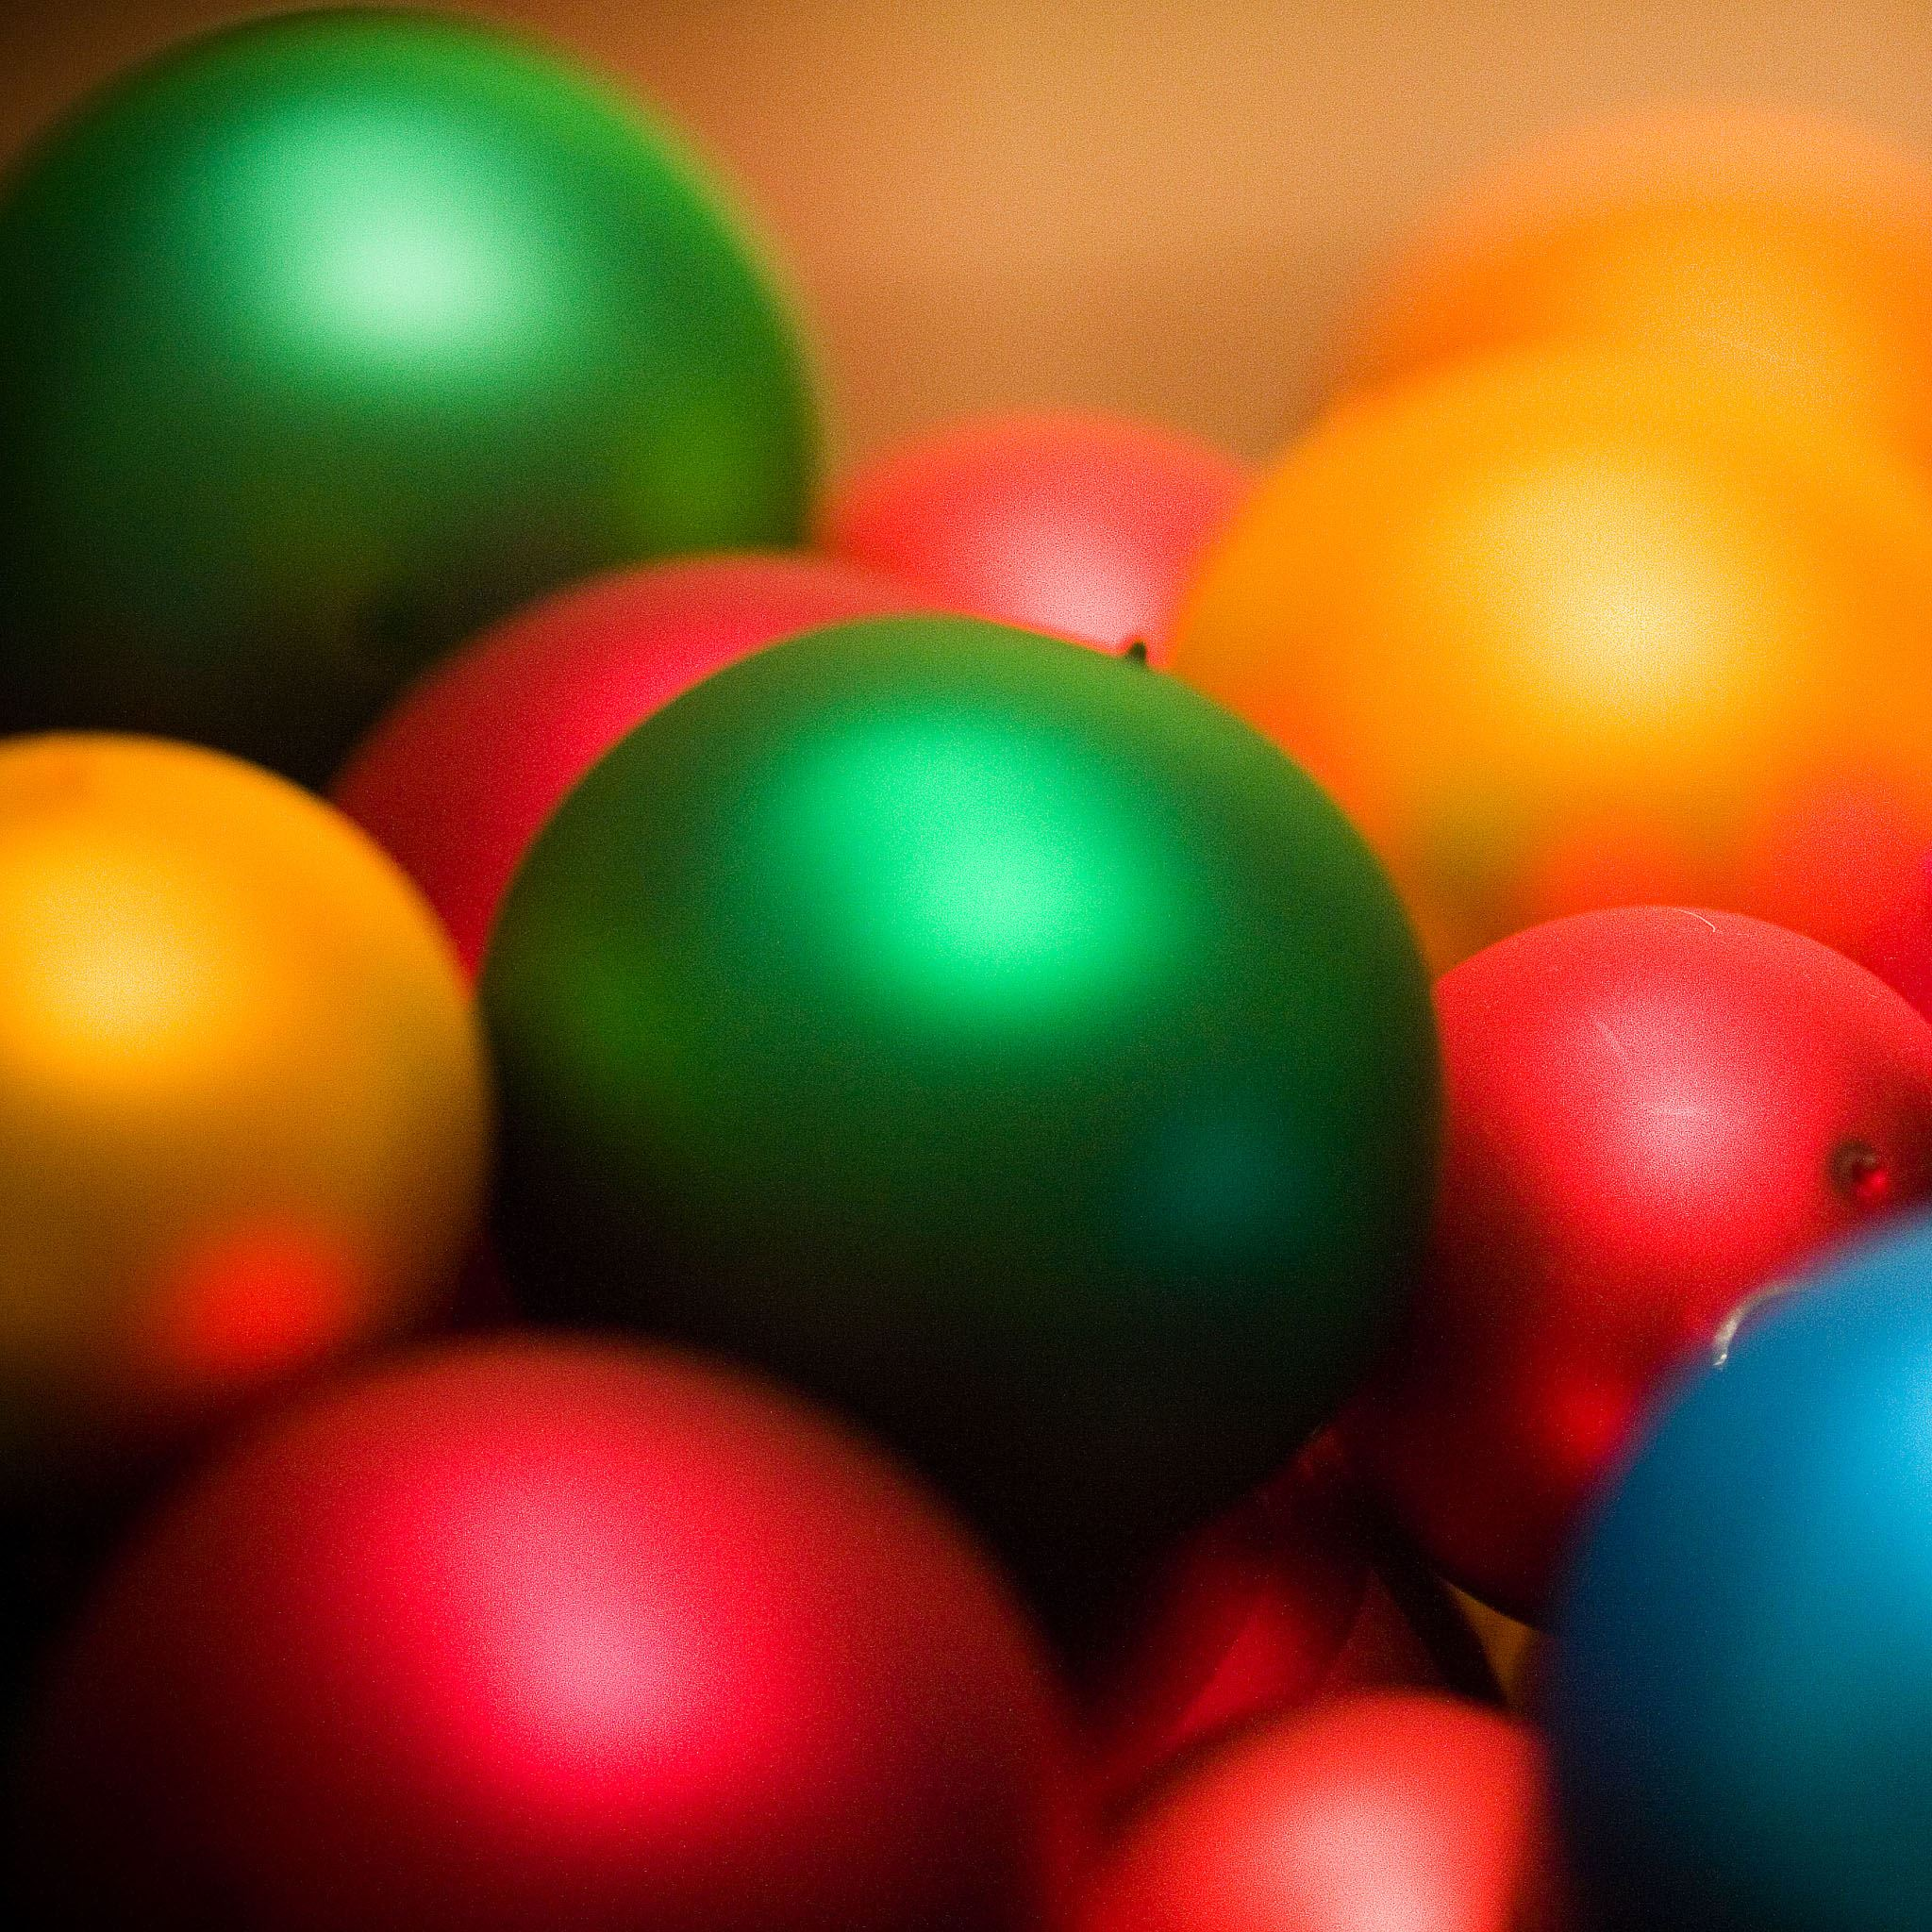 Happy Festival Colored Balls iPad Air wallpaper